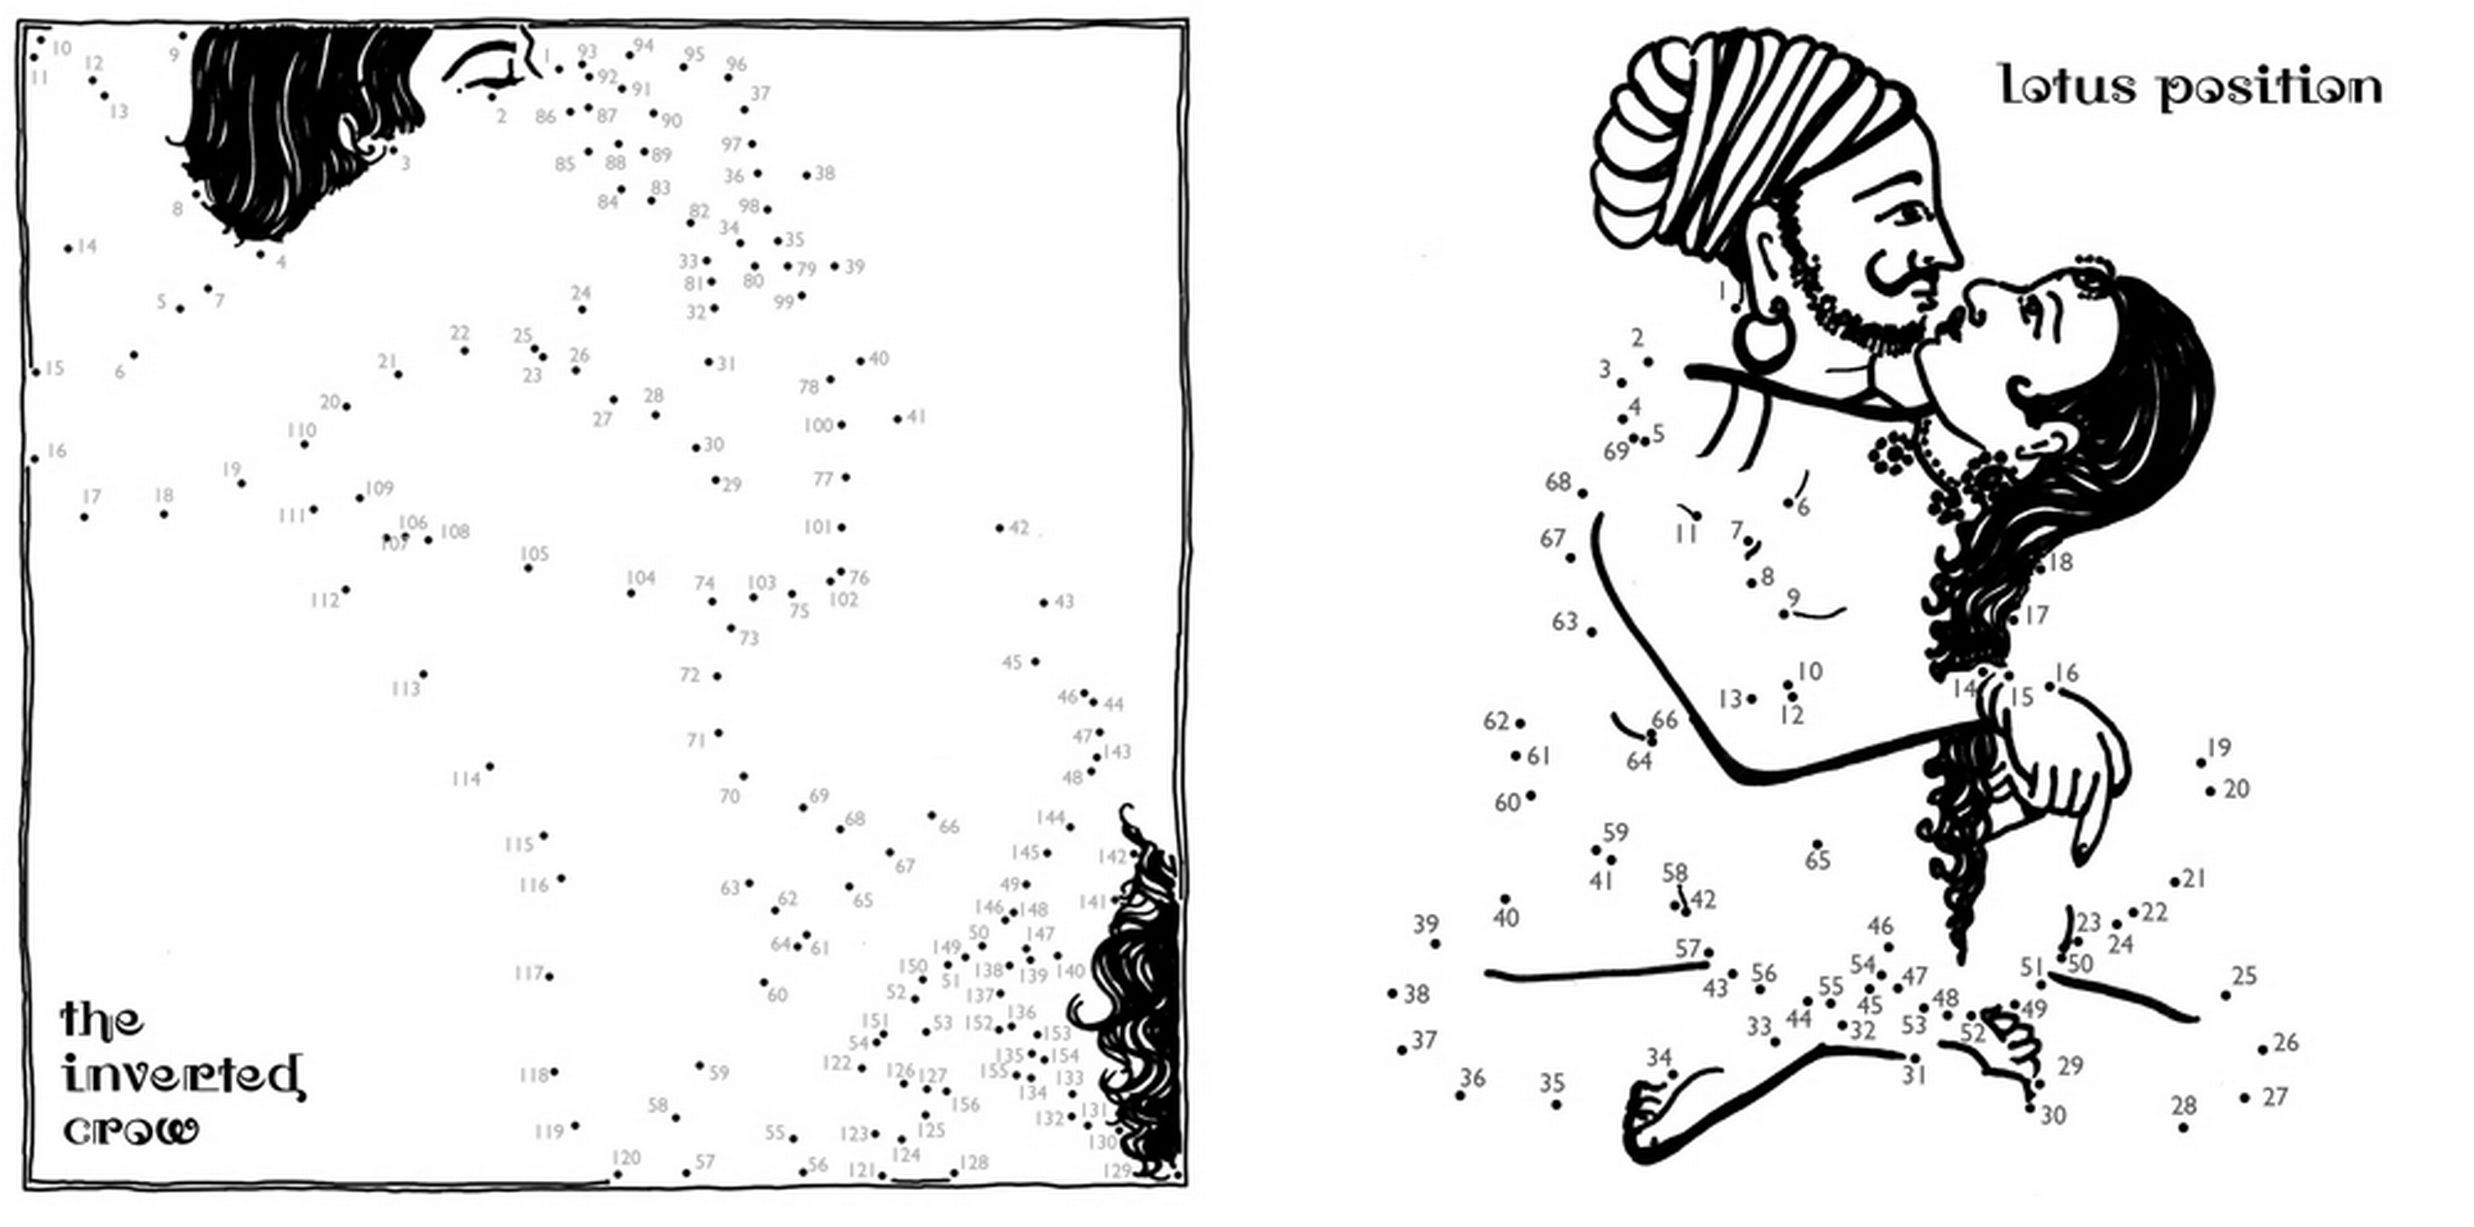 A new dot-to-dot version of the ancient Kama Sutra sex